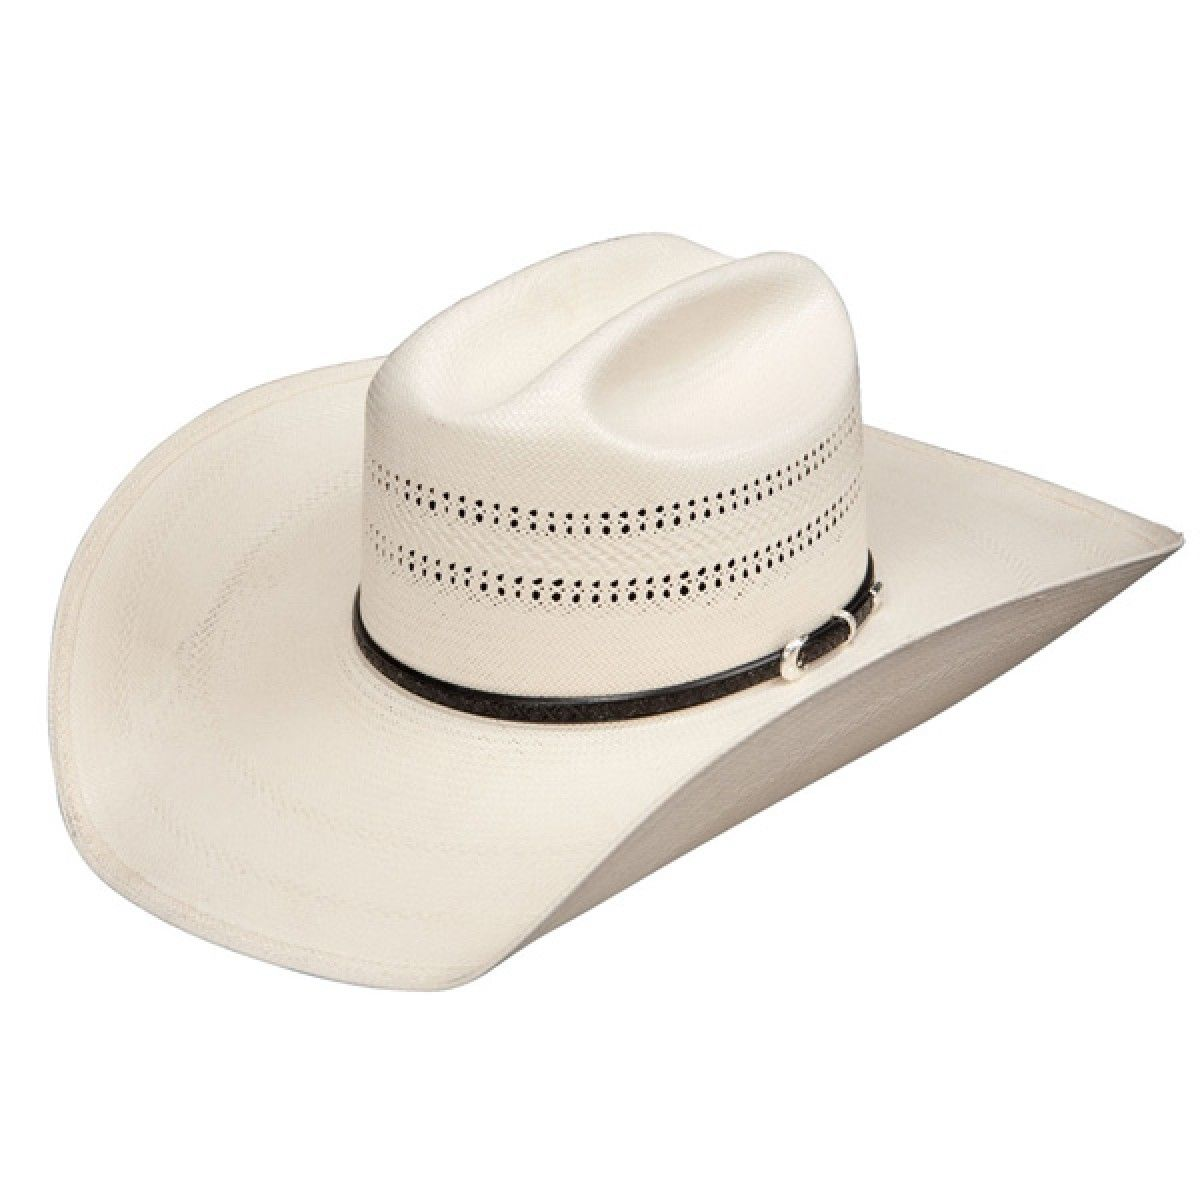 Stetson Southpoint - (10X) Straw Cowboy Hat  107.98  9291898f80ed